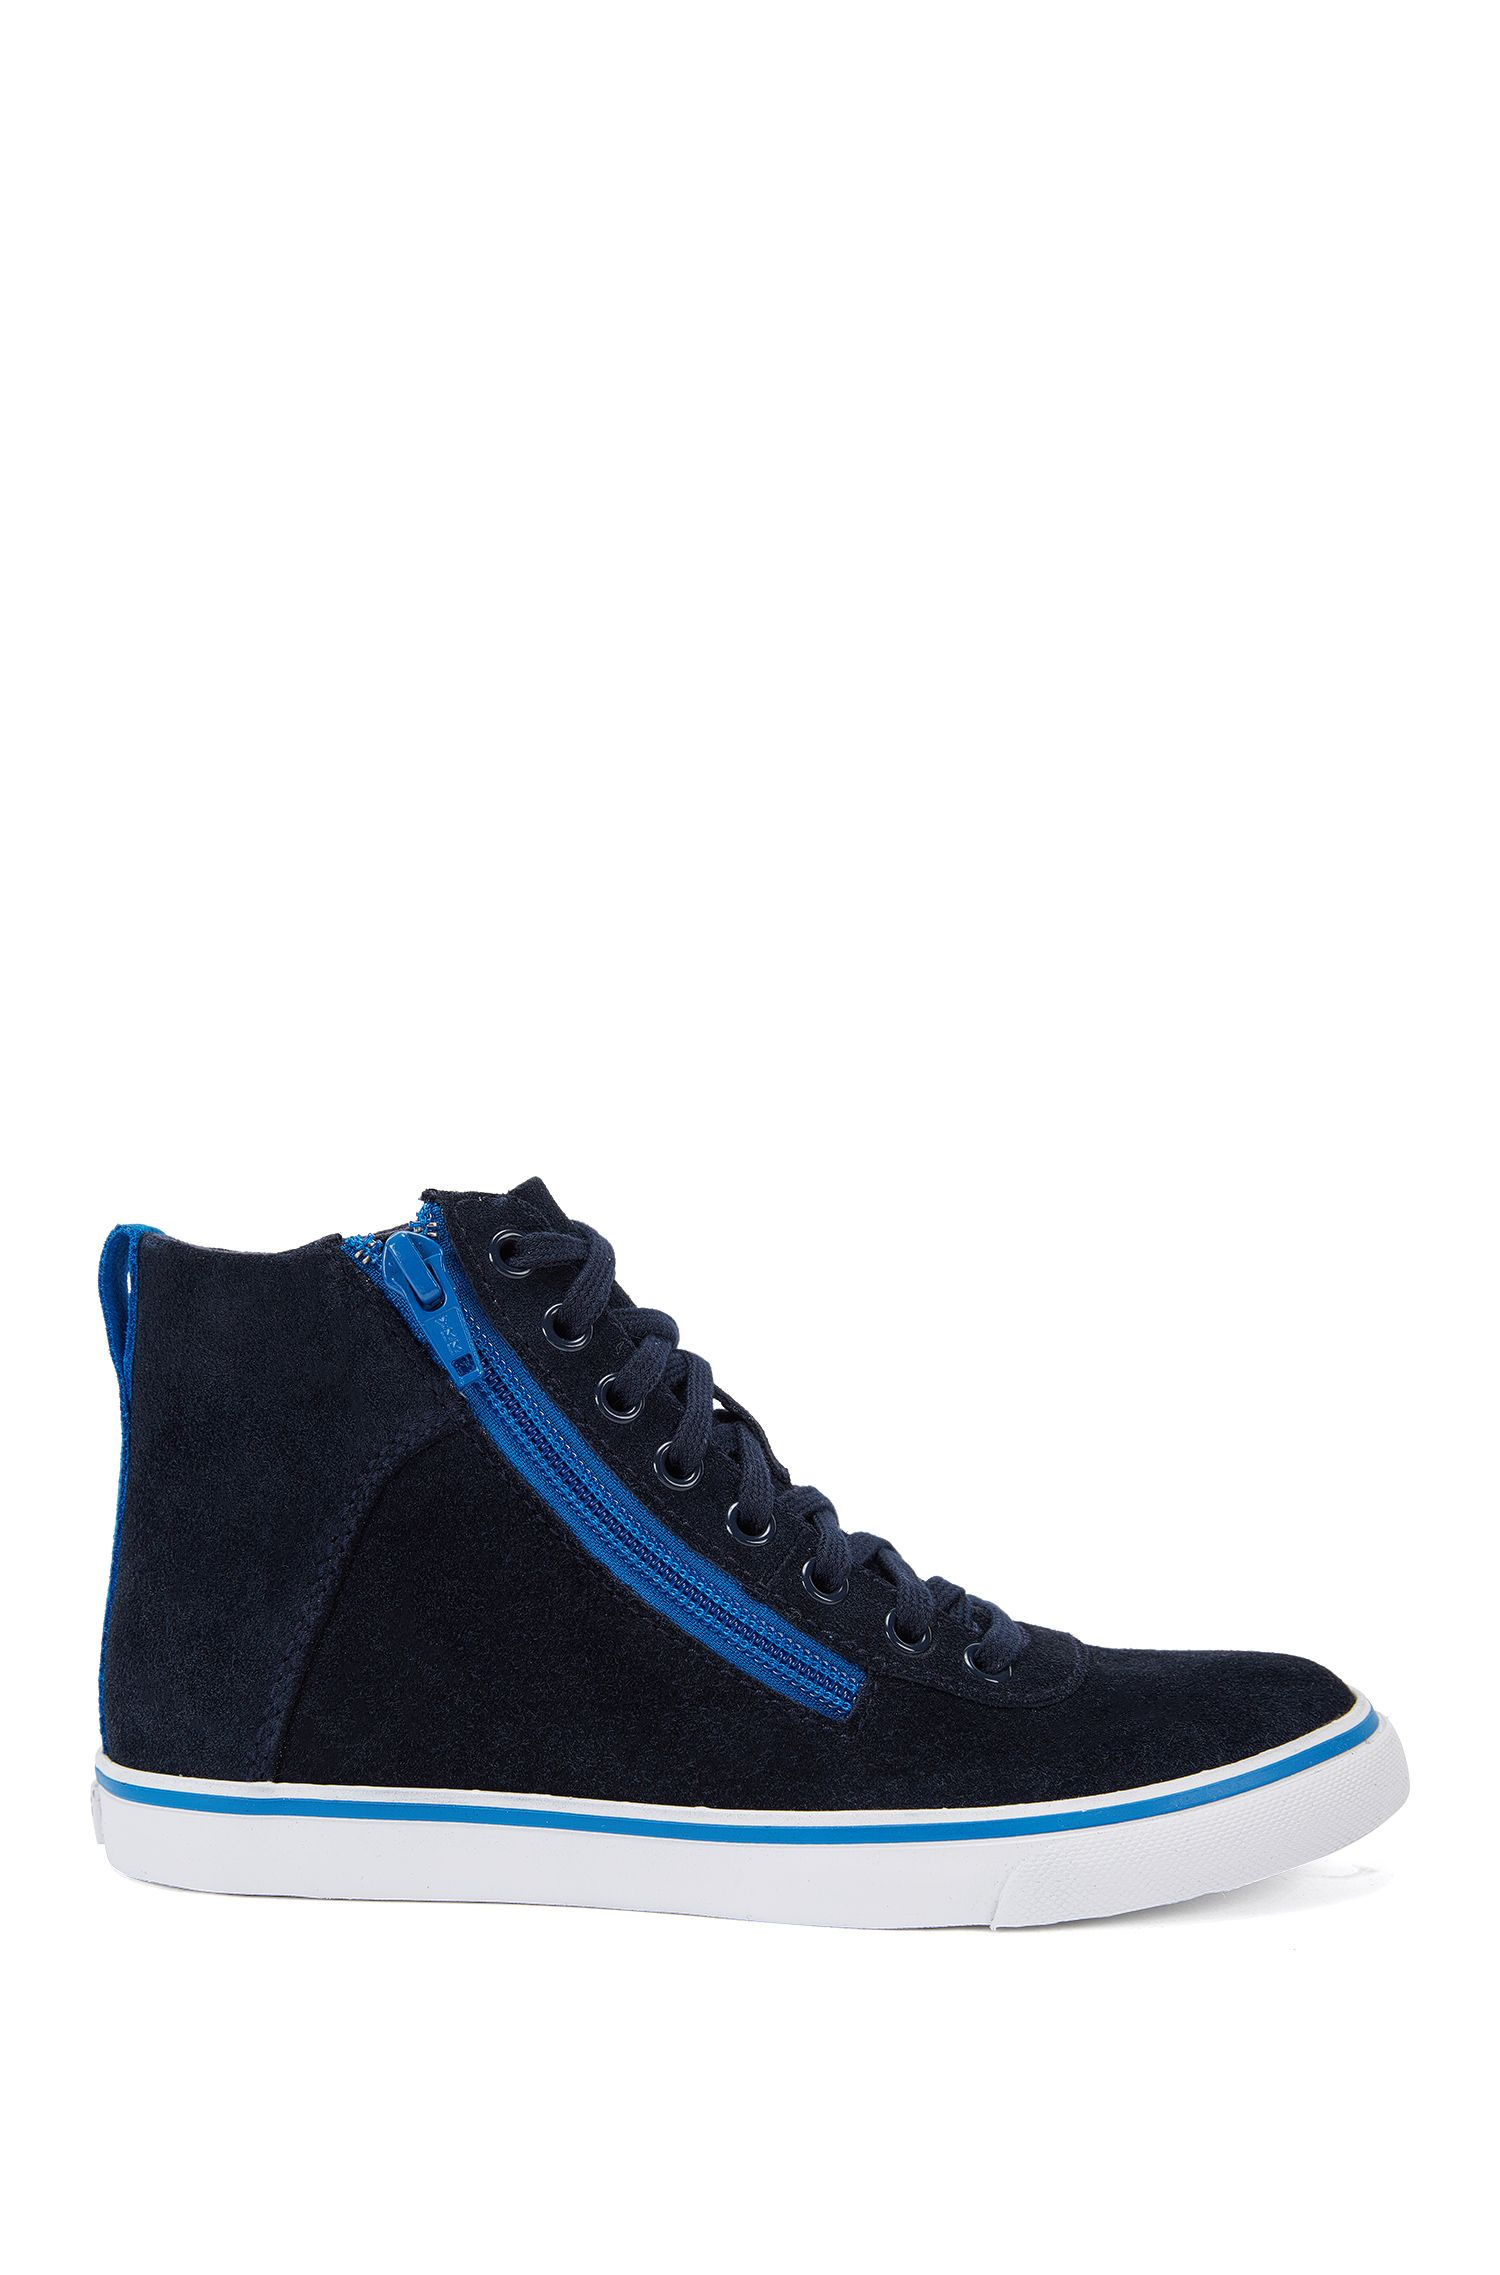 Kids High Top-Sneakers aus Leder mit Kontrast-Details: 'J29121'